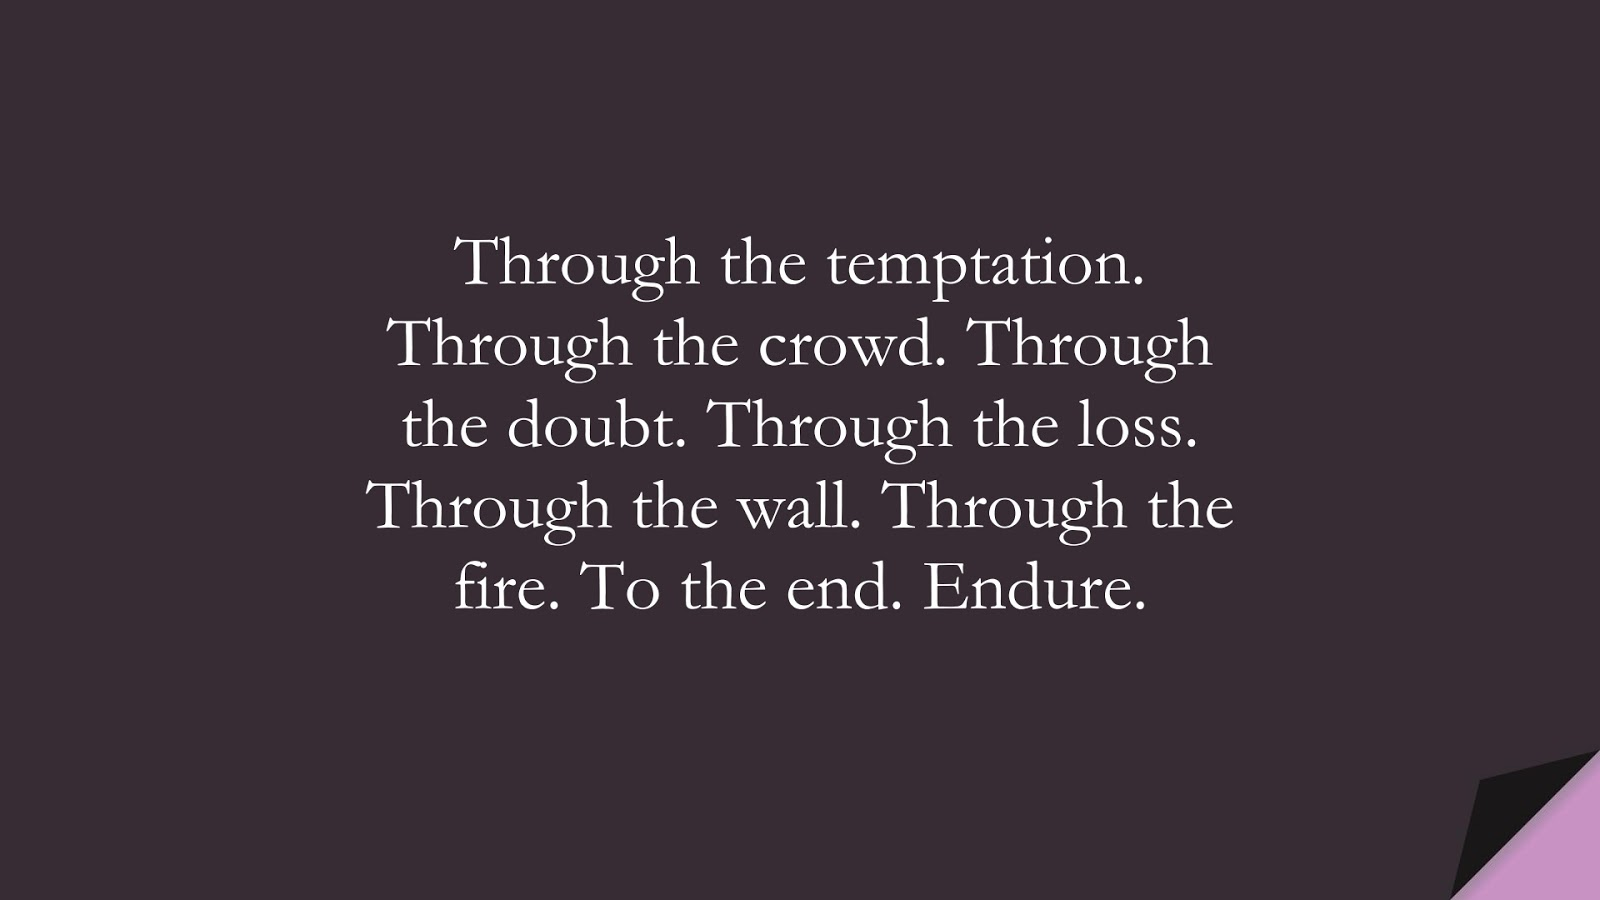 Through the temptation. Through the crowd. Through the doubt. Through the loss. Through the wall. Through the fire. To the end. Endure.FALSE